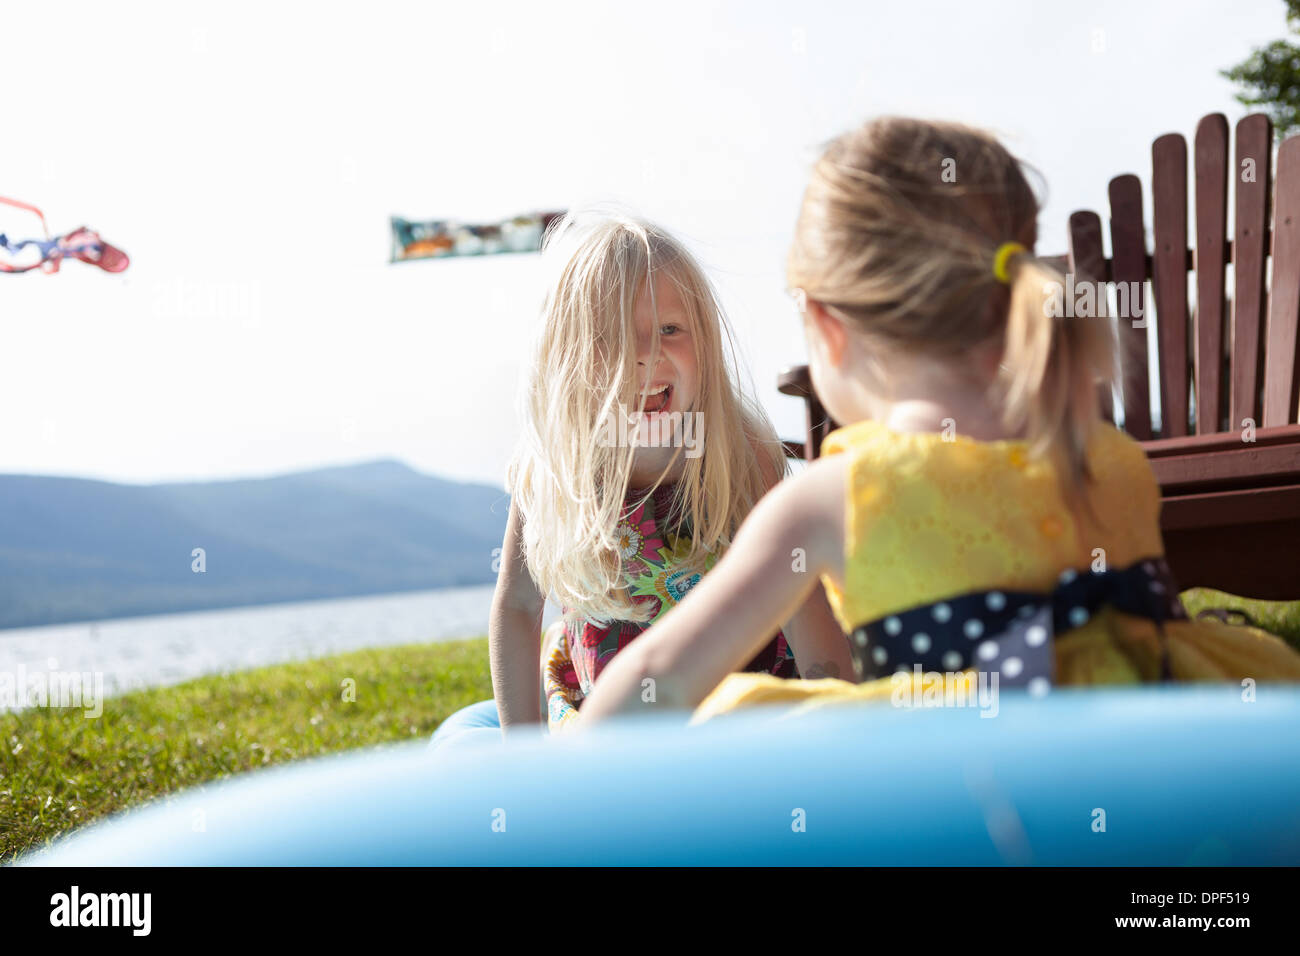 Two female toddlers sitting on air bed, Silver Bay, New York, USA - Stock Image